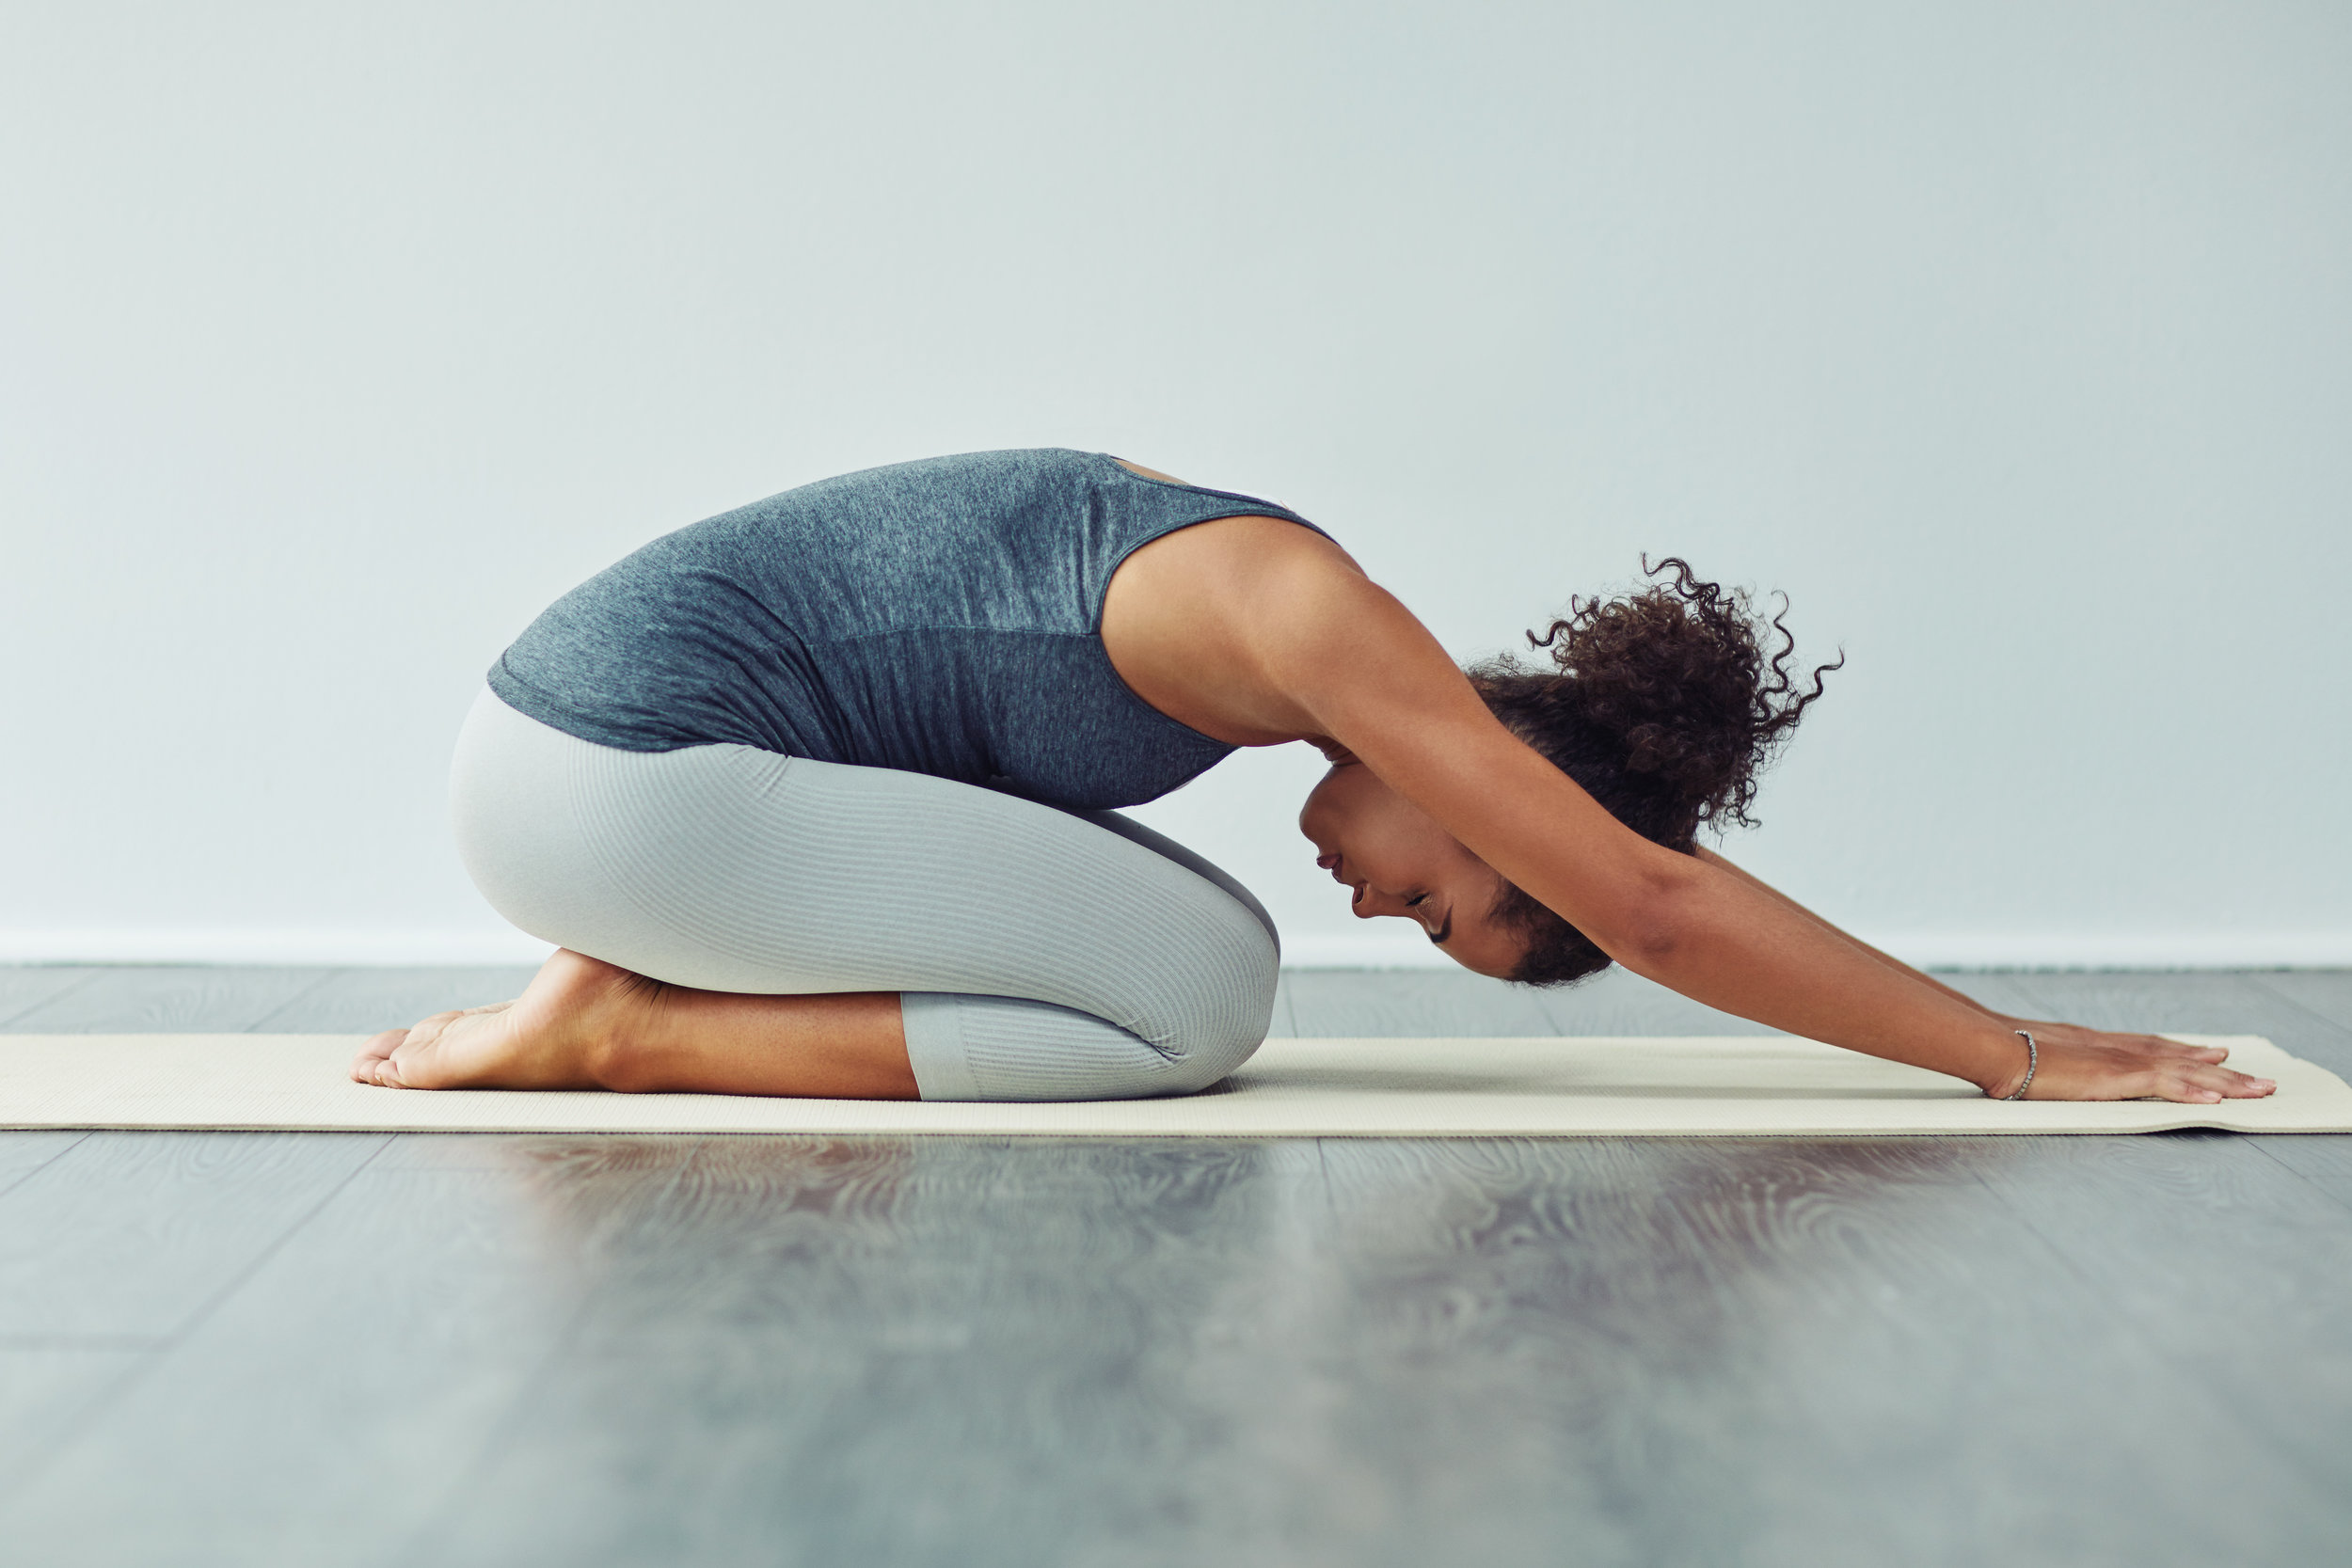 BEFRIEND YOUR BODY AGAIN - Therapeutic yoga is the application of yoga postures to the treatment of health conditions and involves instruction in yogic practices and teachings to prevent reduce or alleviate pain, suffering or limitations.